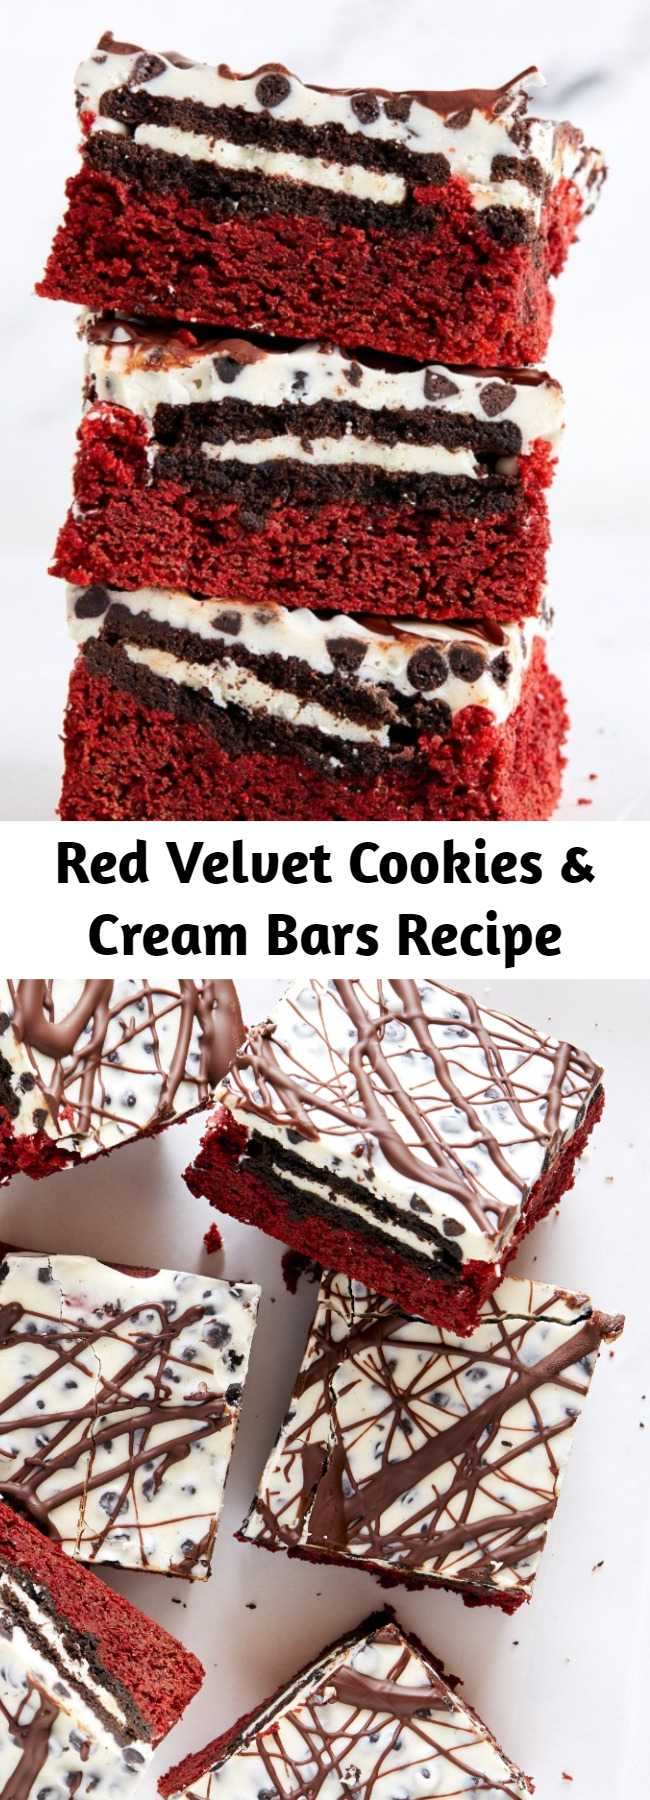 Red Velvet Cookies & Cream Bars Recipe - You can turn red velvet cake mix into decadent brownies with this recipe. For the cookies & cream lovers in your life, these bars are the ultimate.